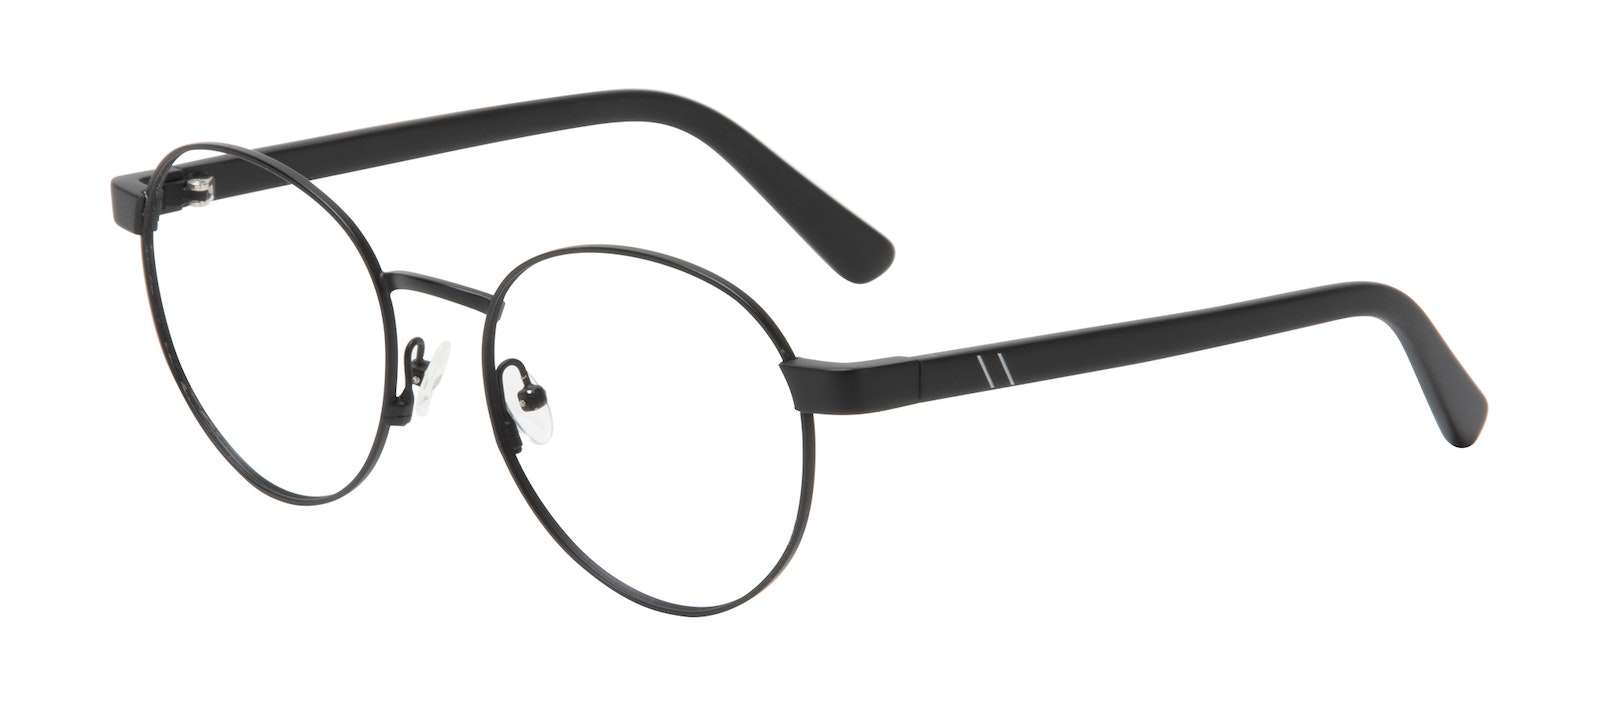 Affordable Fashion Glasses Round Eyeglasses Men Alter Black Tilt